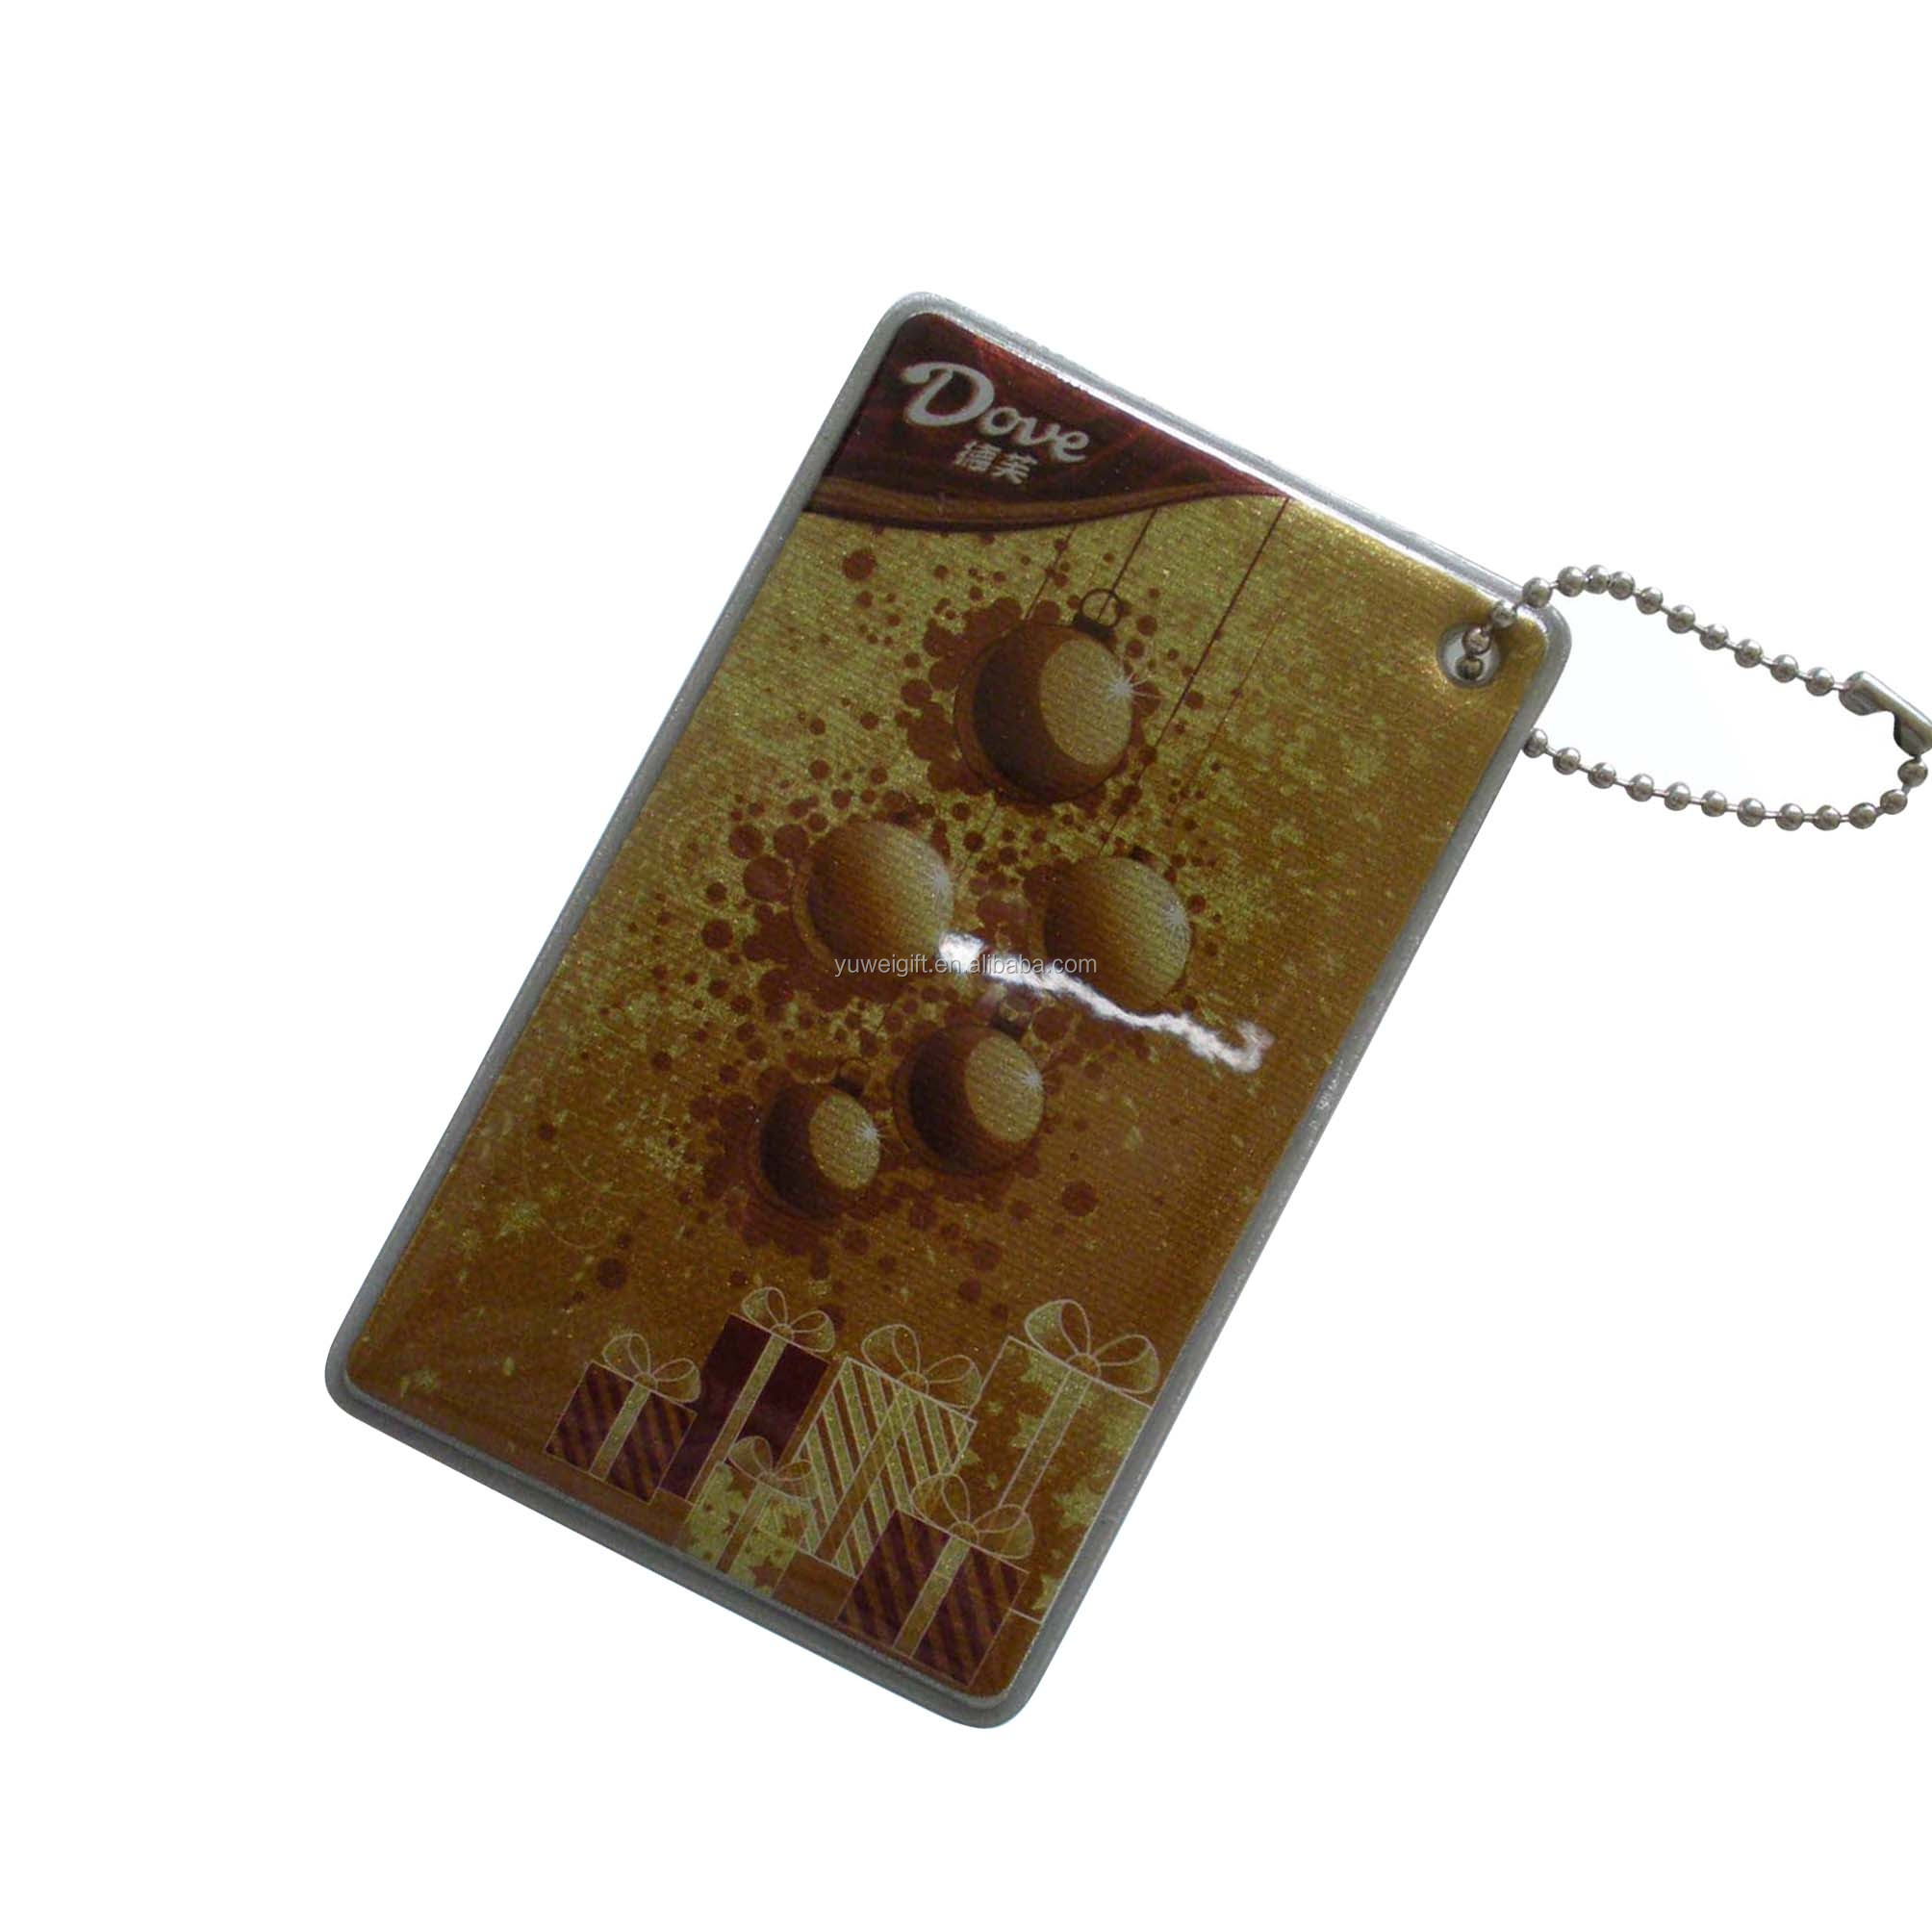 keychain card holder keychain card holder suppliers and